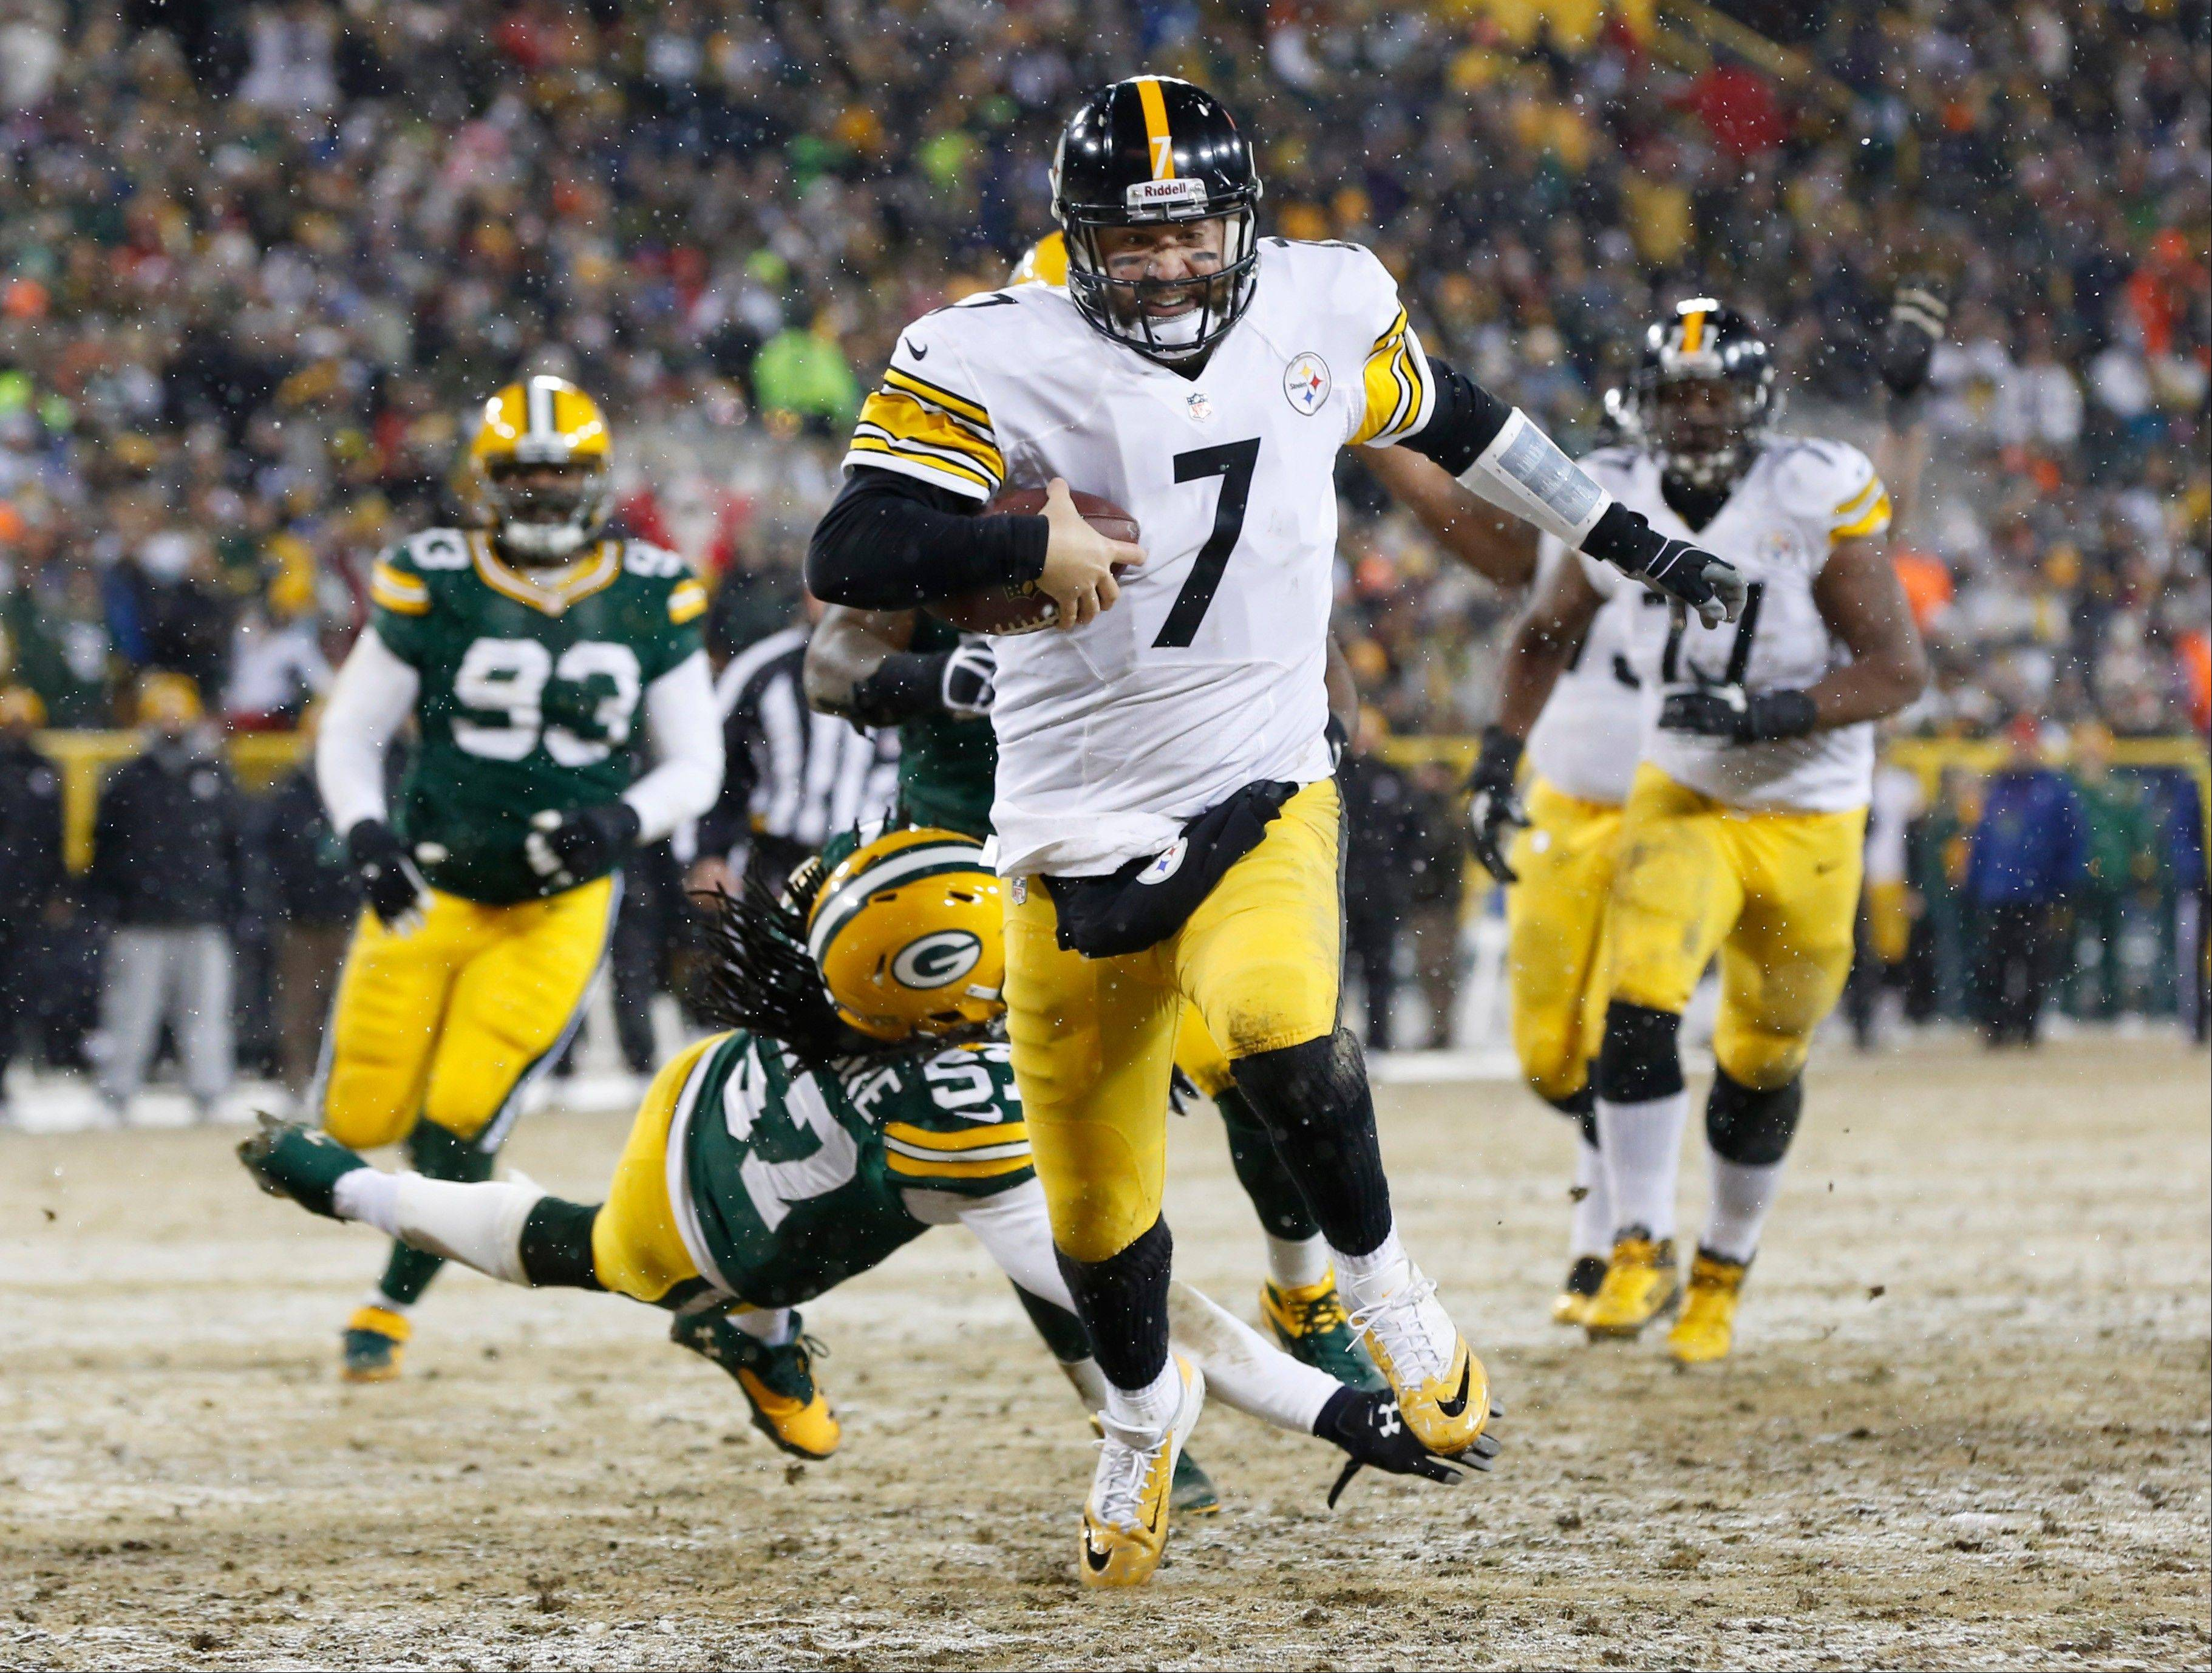 Pittsburgh Steelers� Ben Roethlisberger breaks away from Green Bay Packers� Jamari Lattimore (57) for a touchdown run during the second half of an NFL football game Sunday, Dec. 22, 2013, in Green Bay, Wis.